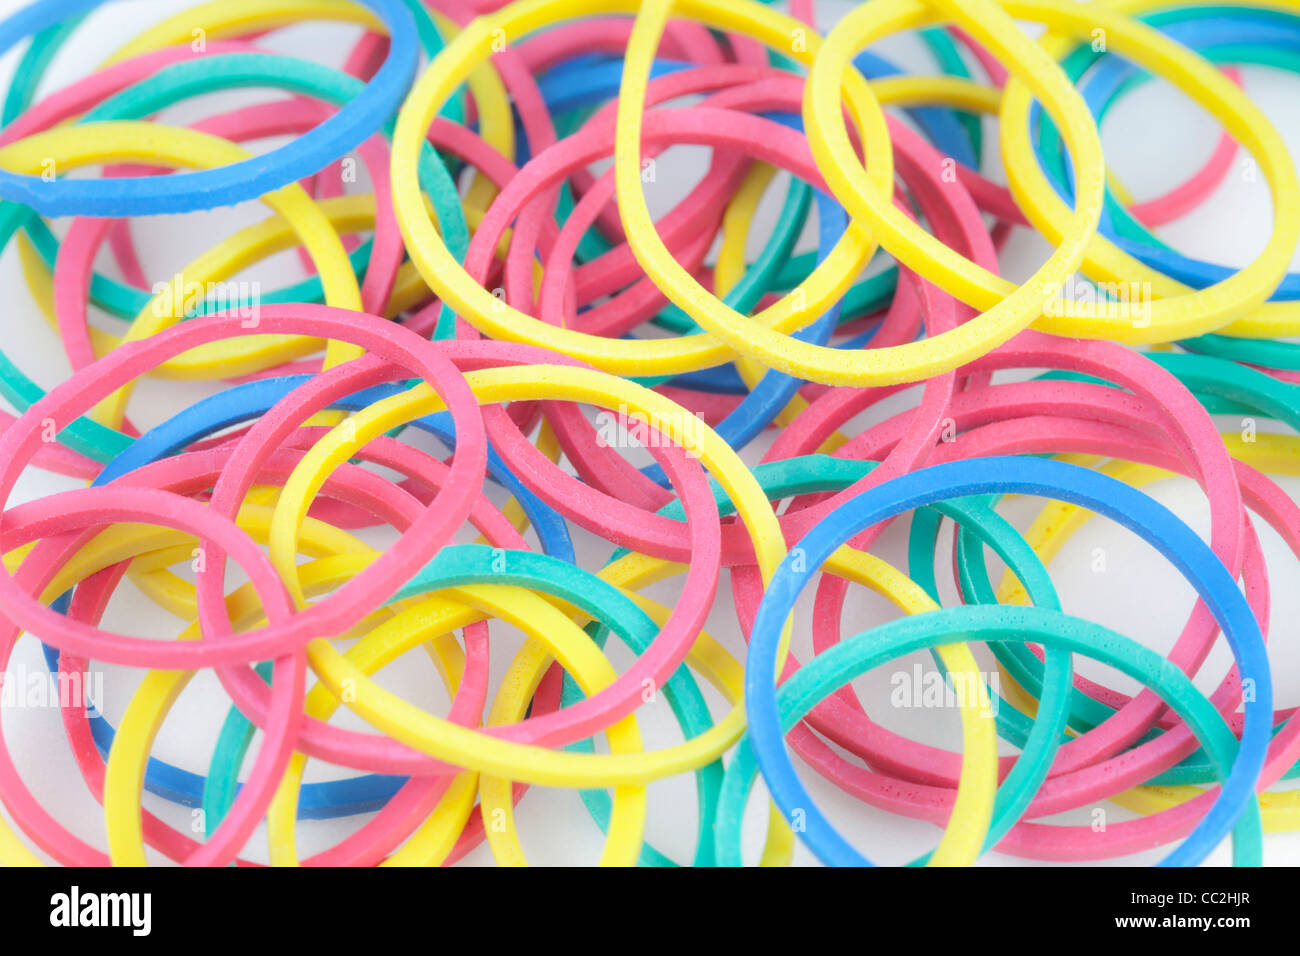 Colourful elastic bands - Stock Image